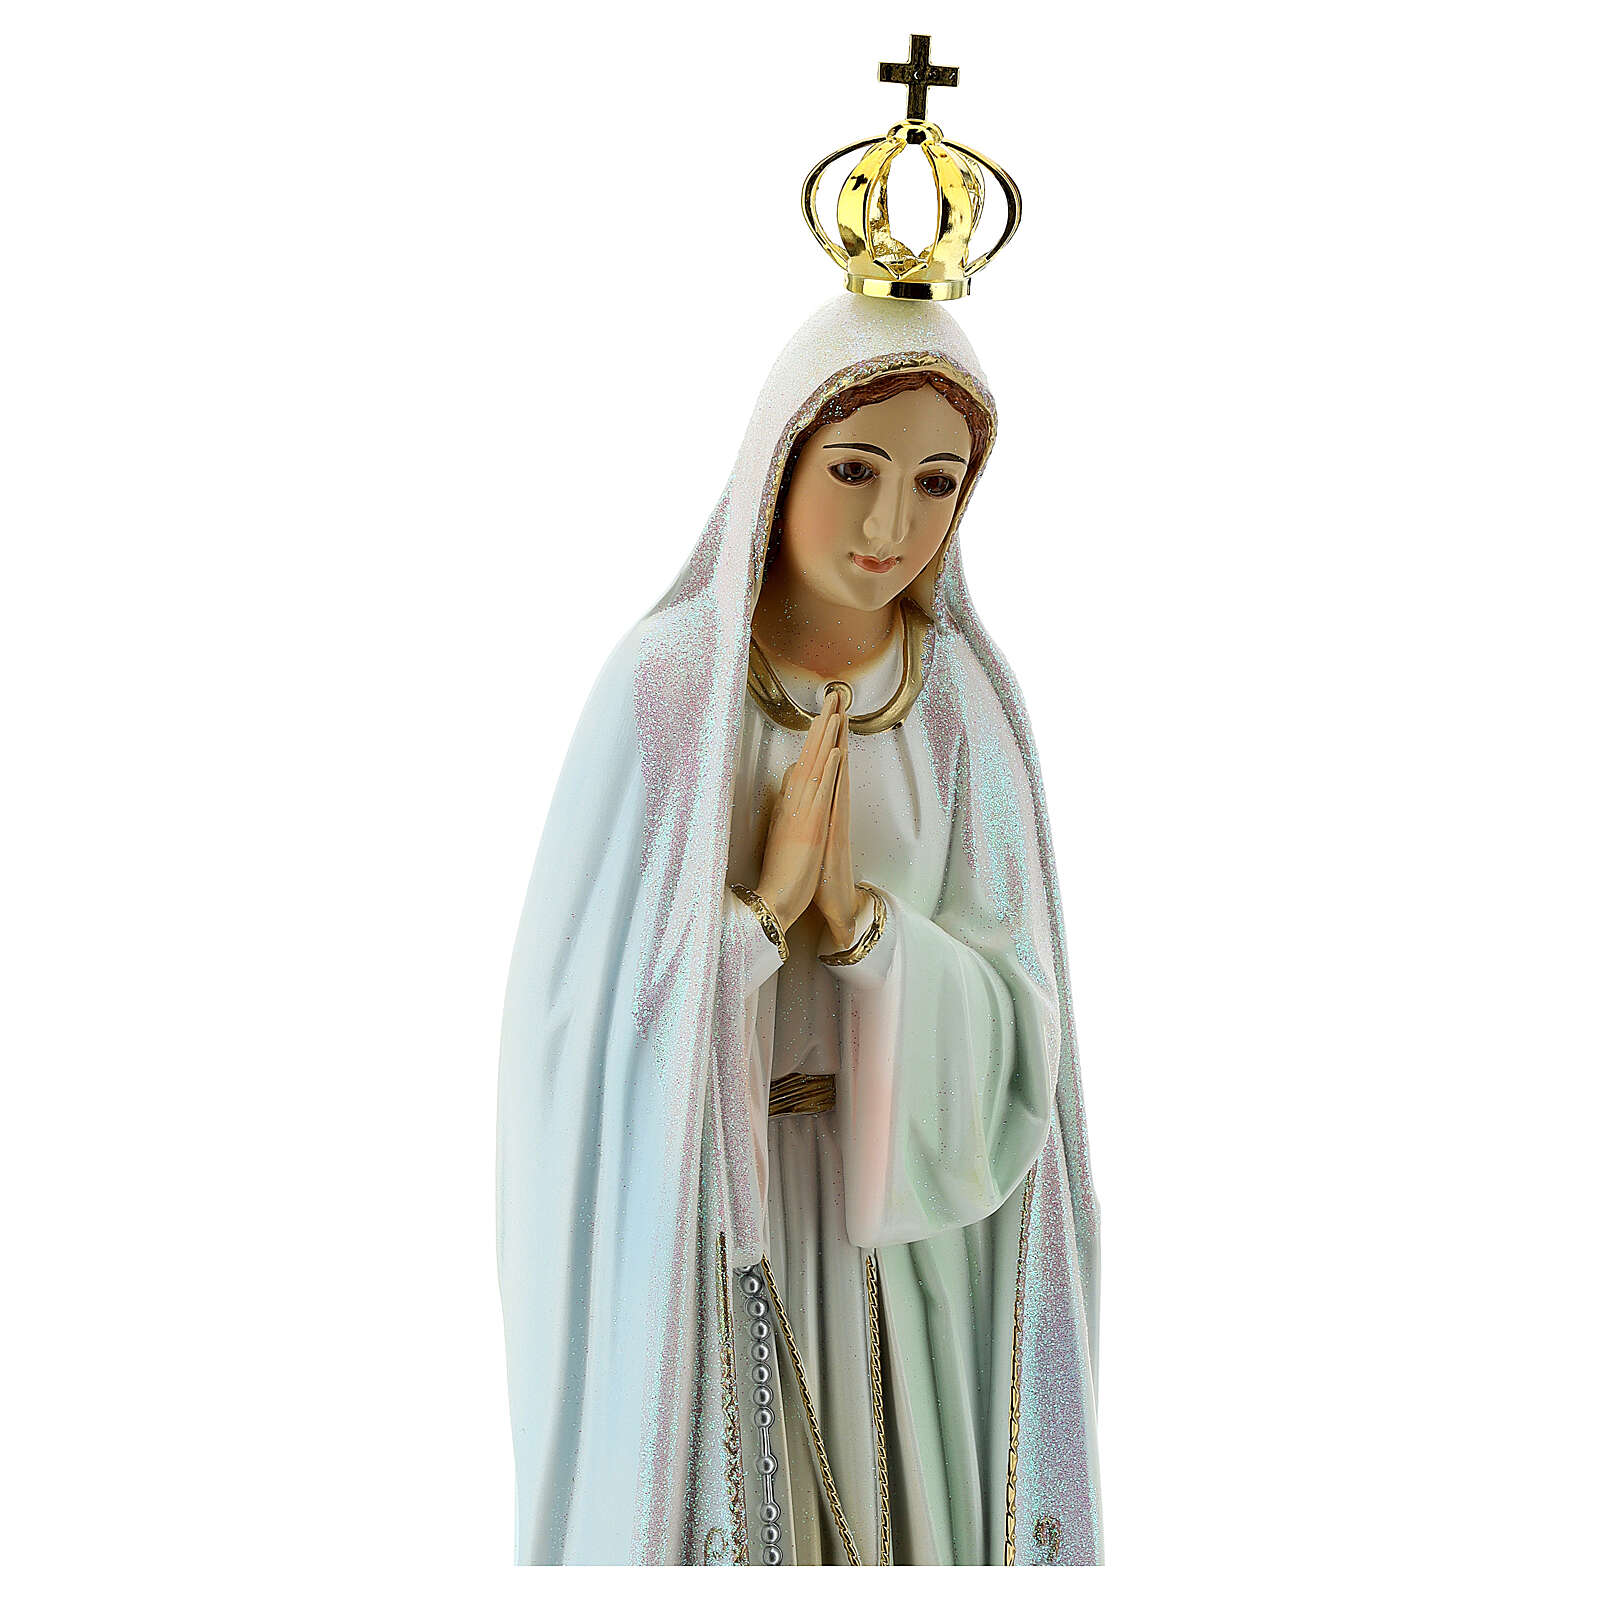 Our Lady of Fatima with Doves, resin made statue 4